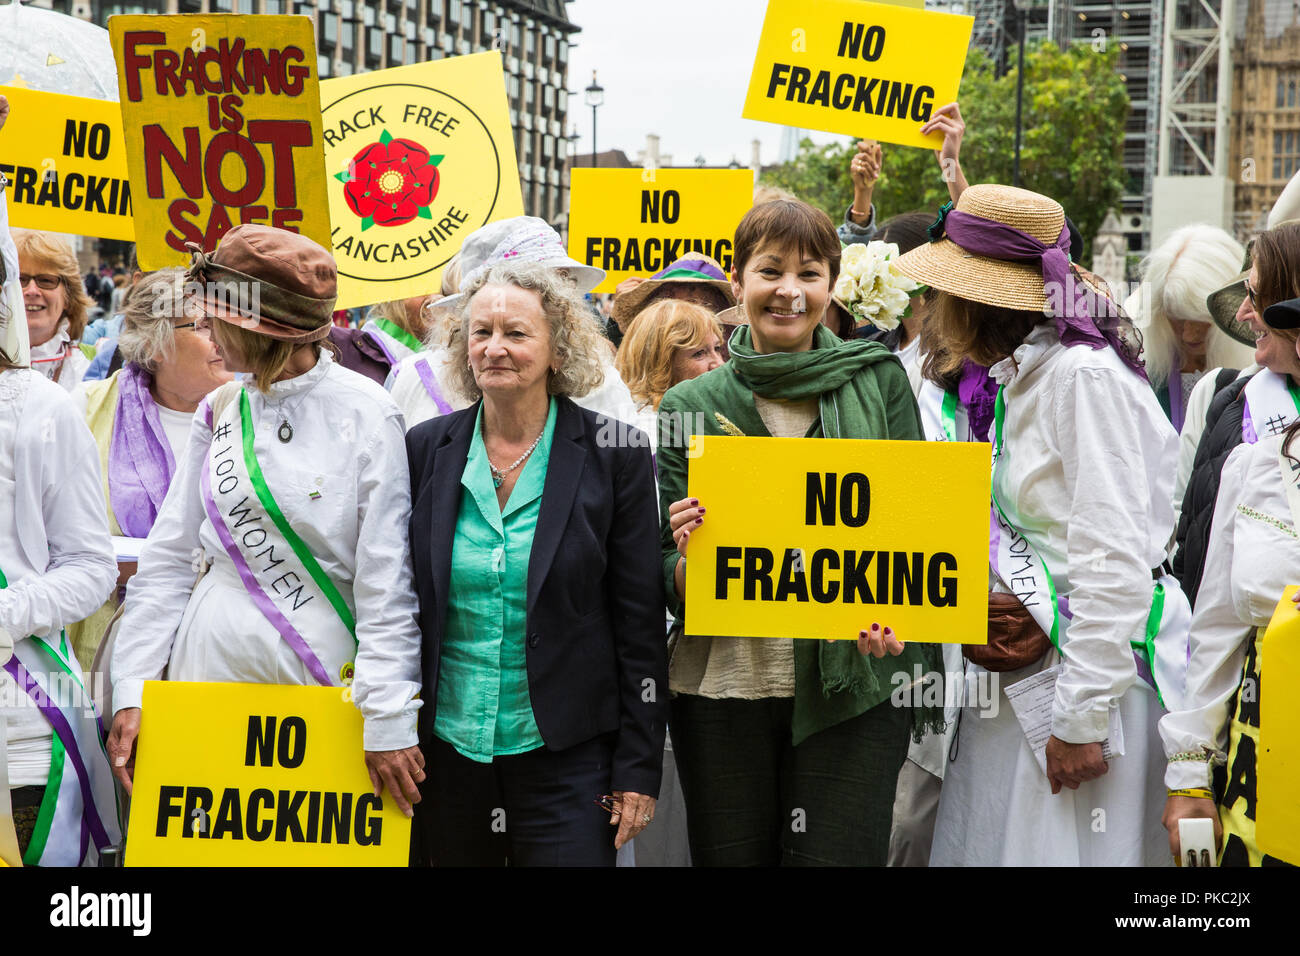 London, UK. 12th September, 2018. Caroline Lucas MP and Baroness Jenny Jones of the Green Party stand with women from across the UK at a 100Women rally in Parliament Square to honour the Suffragettes and to draw attention to the lack of democracy in overturning local votes against fracking. The rally was organised to coincide with a debate on fracking in Westminster Hall. Credit: Mark Kerrison/Alamy Live News - Stock Image